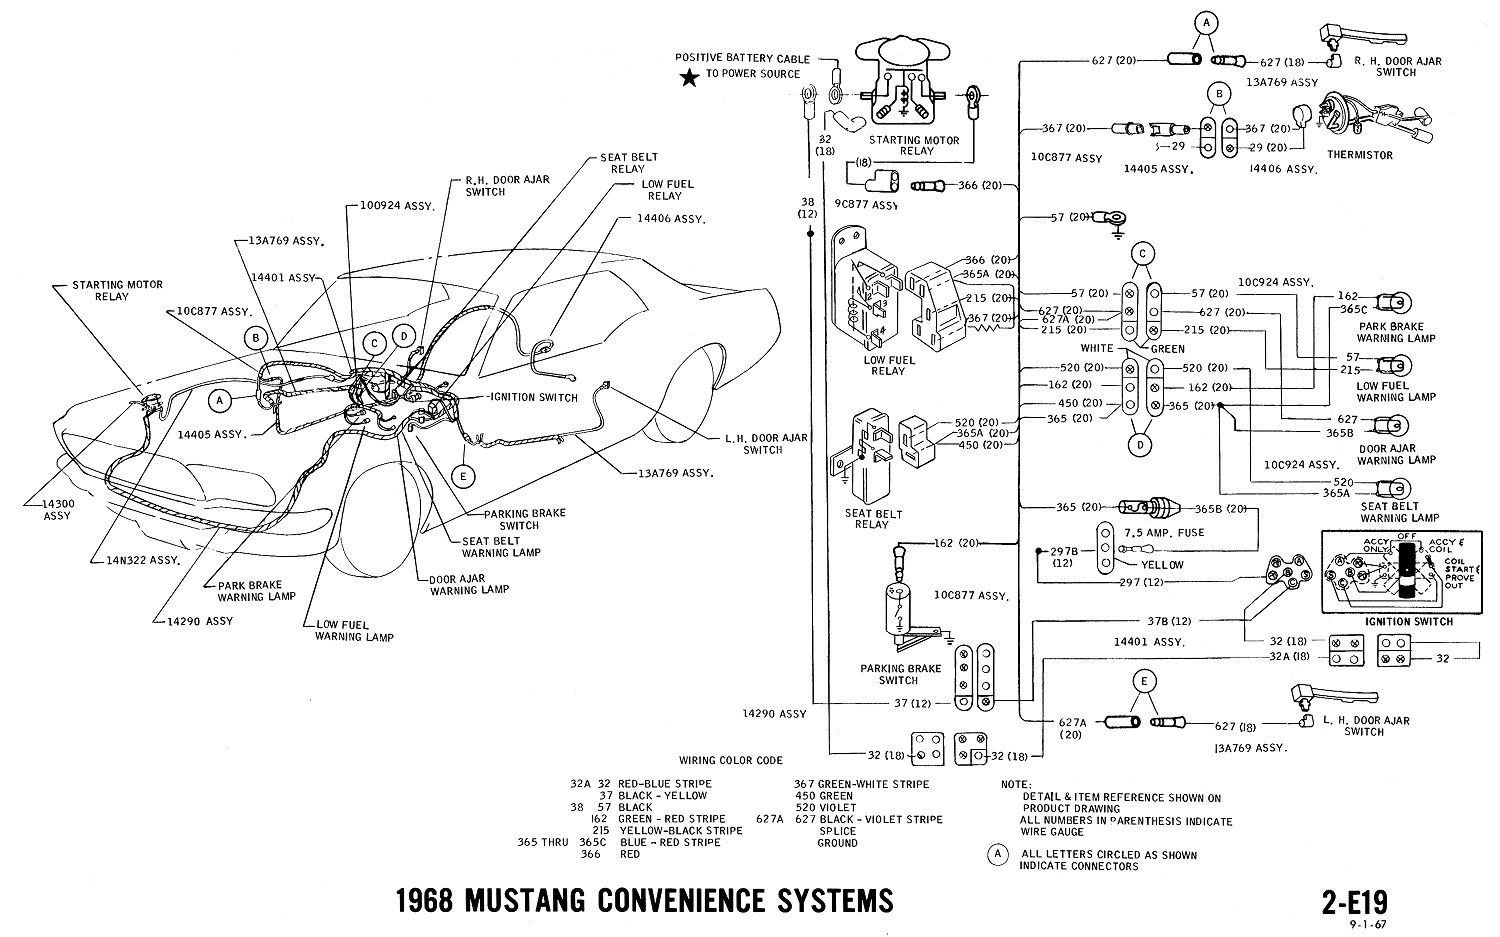 1968 Mustang Wiring Diagram Vacuum Schematics on 96 ford thunderbird wiring schematic